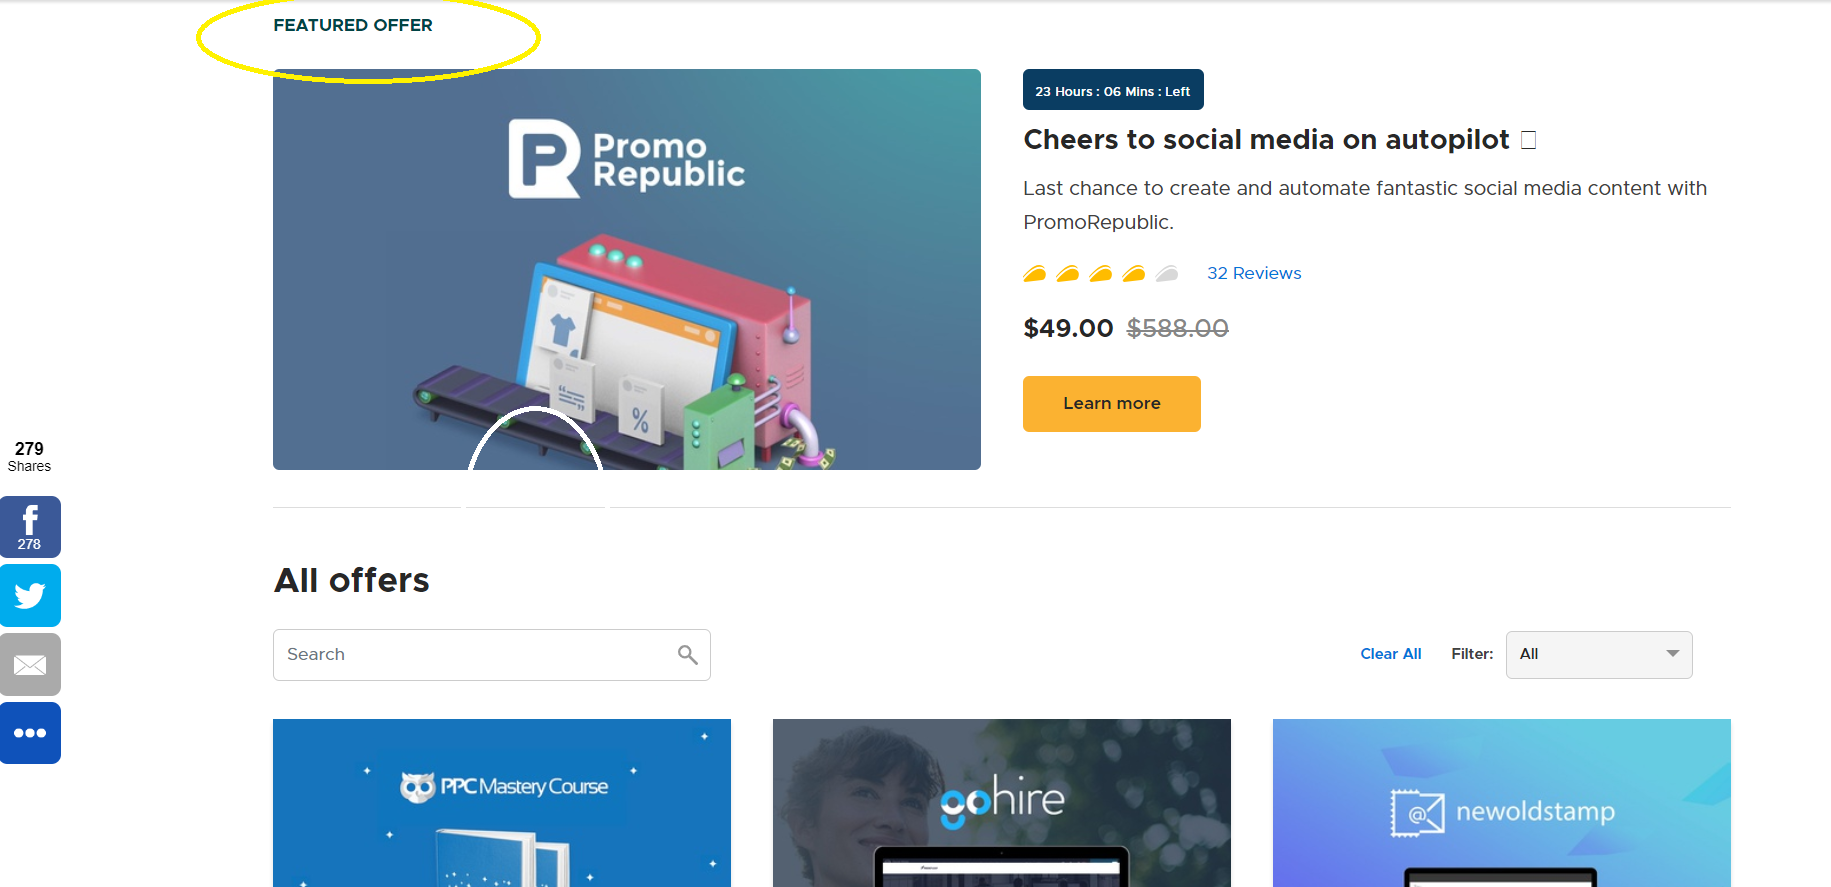 featured offer on appsumo